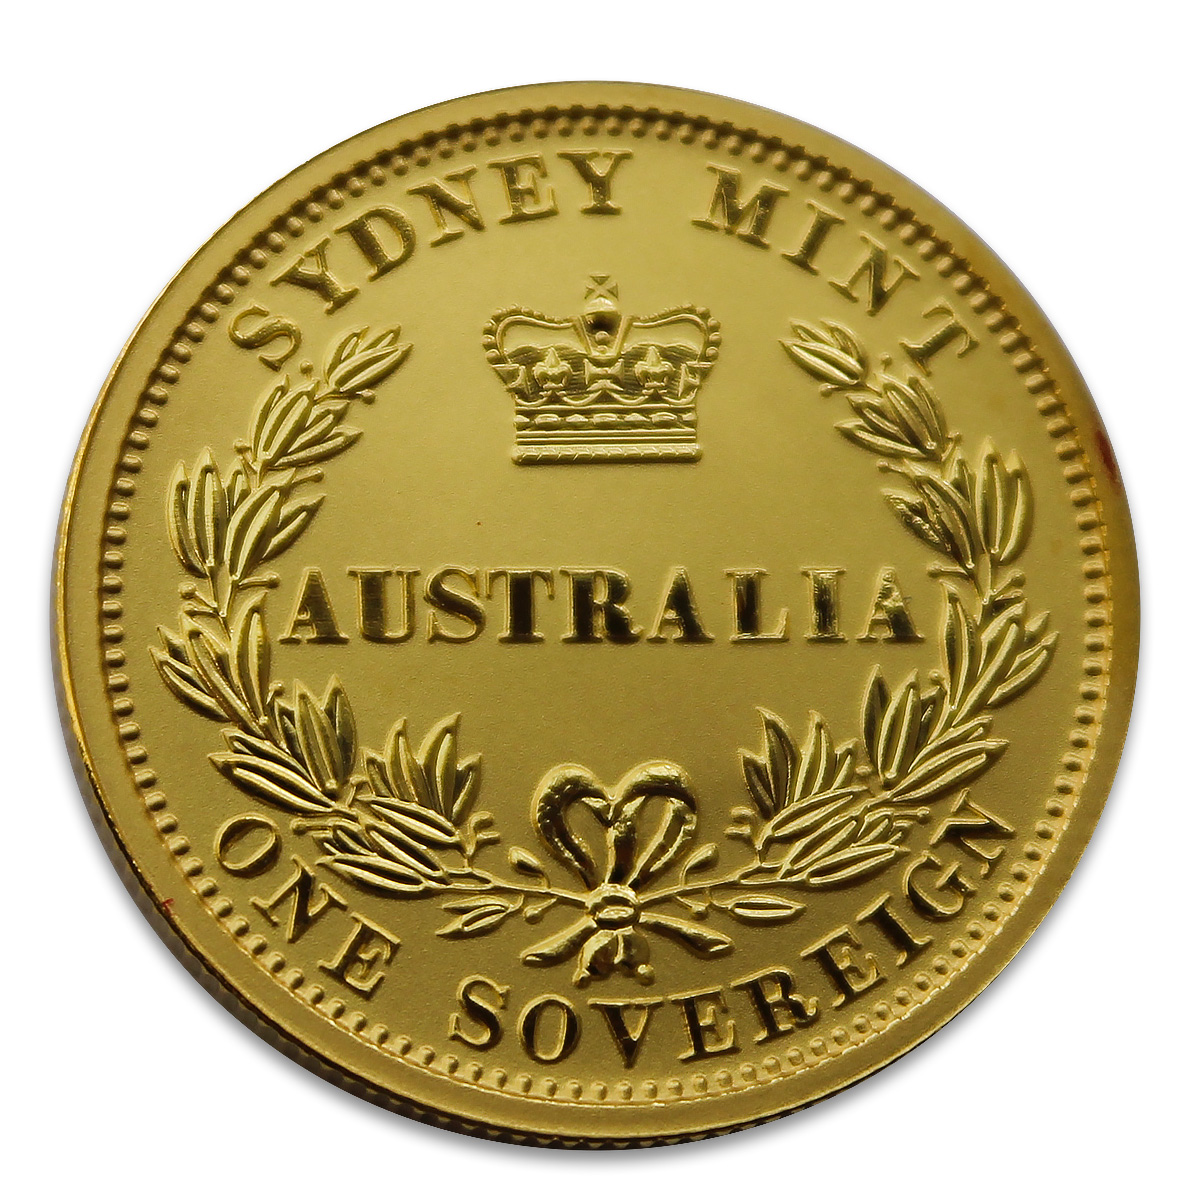 Australian Gold Sovereign Sydney Mint Gold Coin